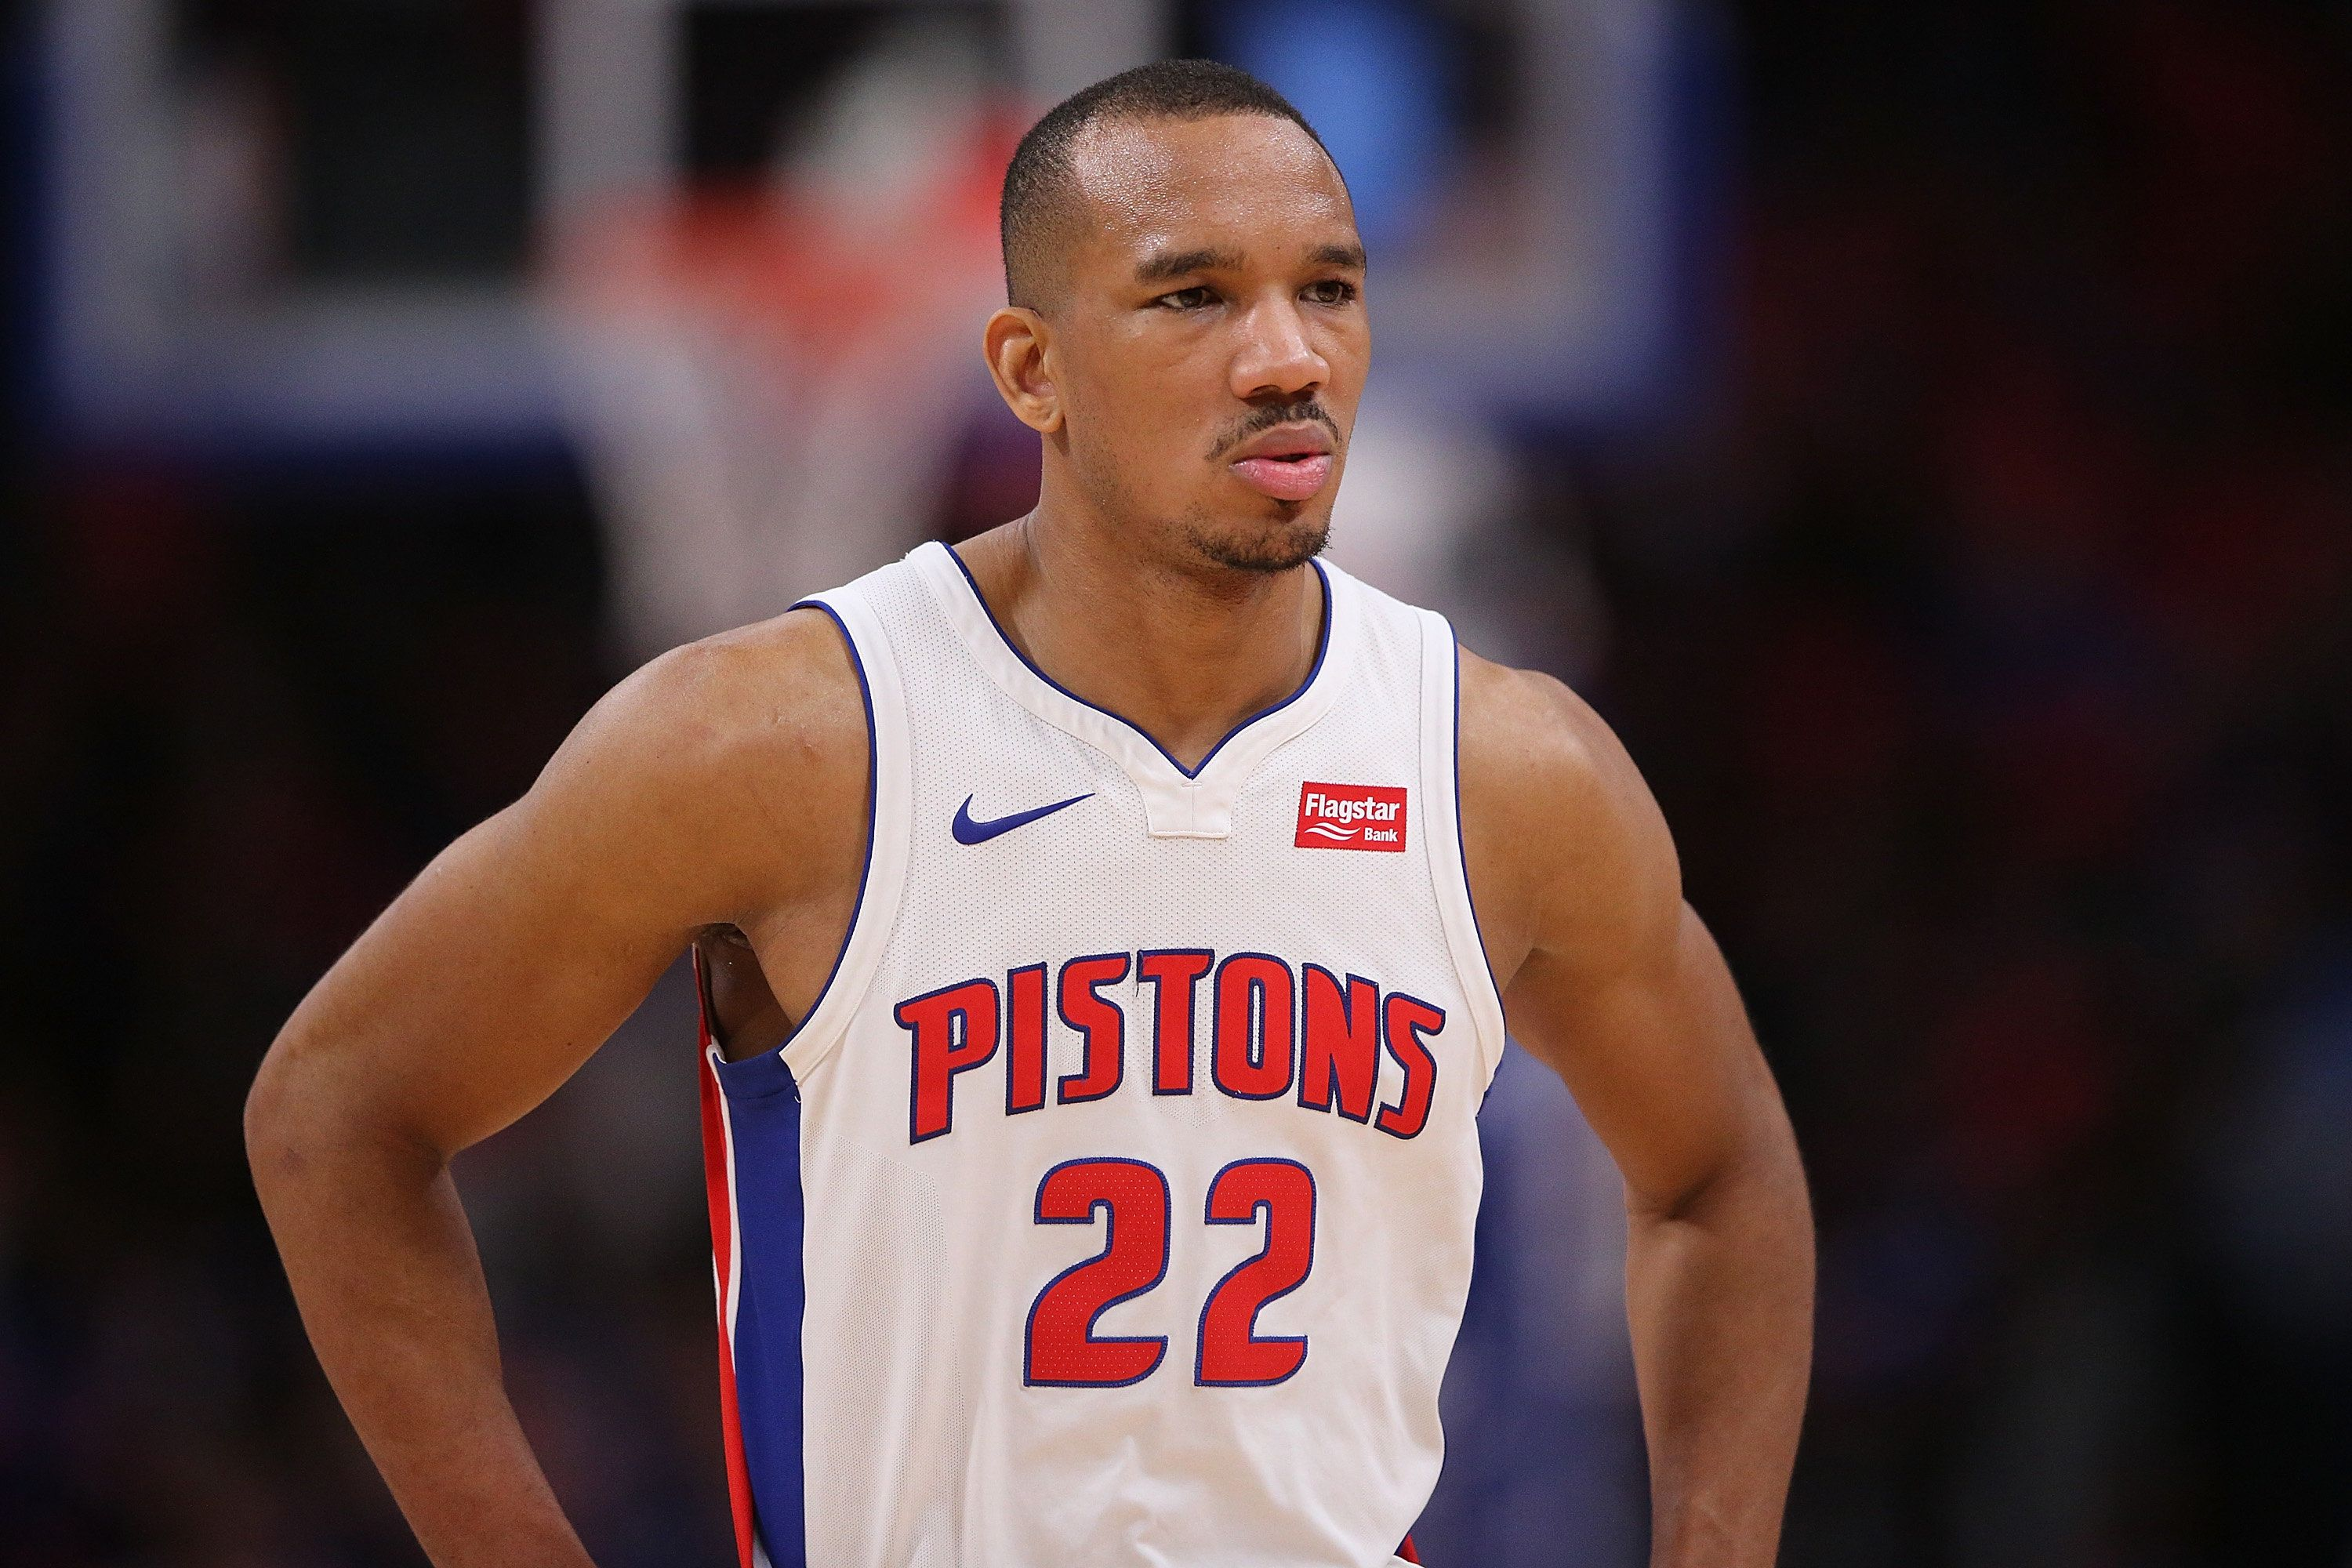 DETROIT, MI - NOVEMBER 29: Avery Bradley #22 of the Detroit Pistons looks to the bench during the second quarter of the game against the Phoenix Suns at Little Caesars Arena on November 29, 2017 in Detroit, Michigan.  Detroit defeated Phoenix 131-107. NOTE TO USER: User expressly acknowledges and agrees that, by downloading and or using this photograph, User is consenting to the terms and conditions of the Getty Images License Agreement (Photo by Leon Halip/Getty Images)